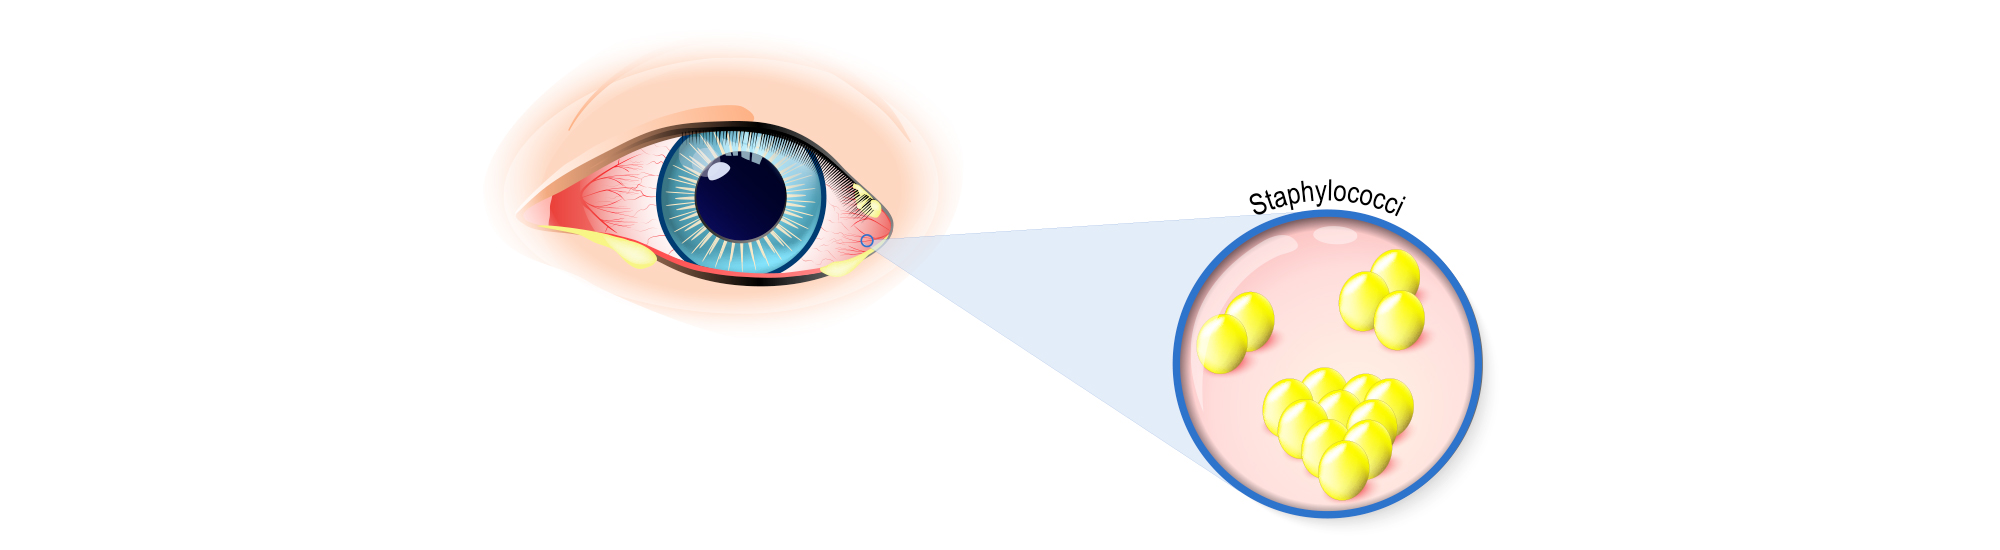 Ayurvedic treatment for What is Eye discharge